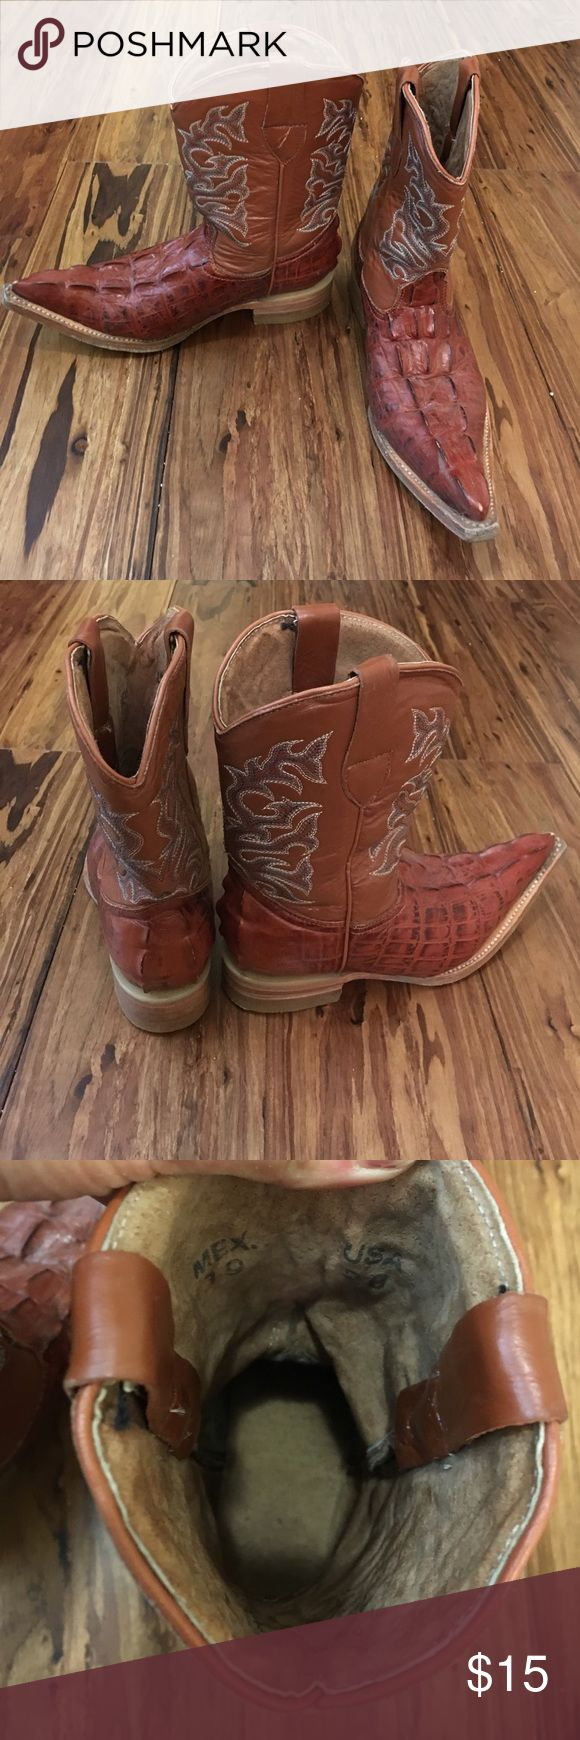 Kids cowboy boots genuine leather These have been gently used and still have a lot of life left in them. They are genuine leather that have alligator look to the shoe. Beautiful rich color that can be worn by boys or girls. aventura Shoes Boots